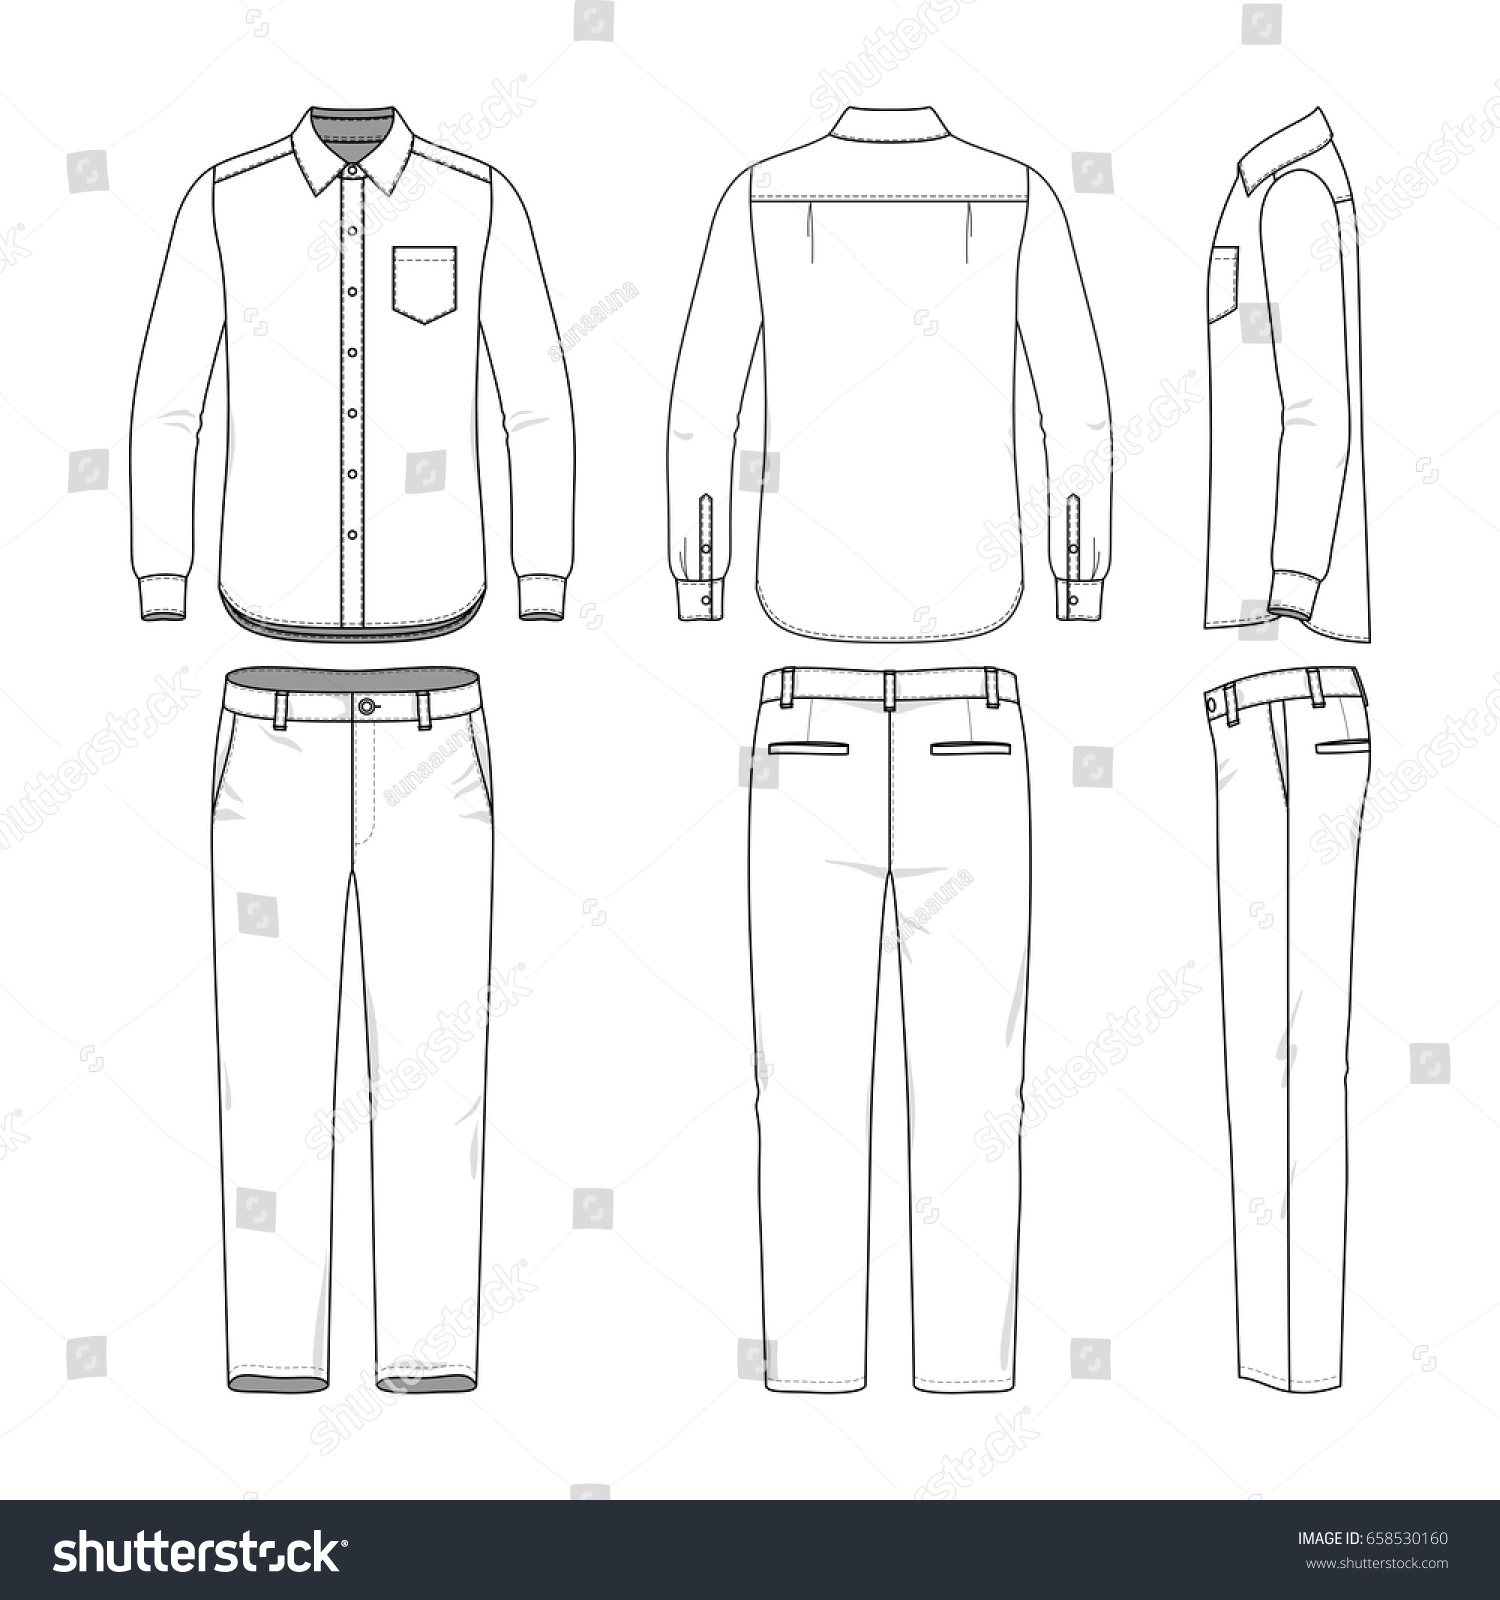 front back and side views of mens shirt and pants blank clothing templates in